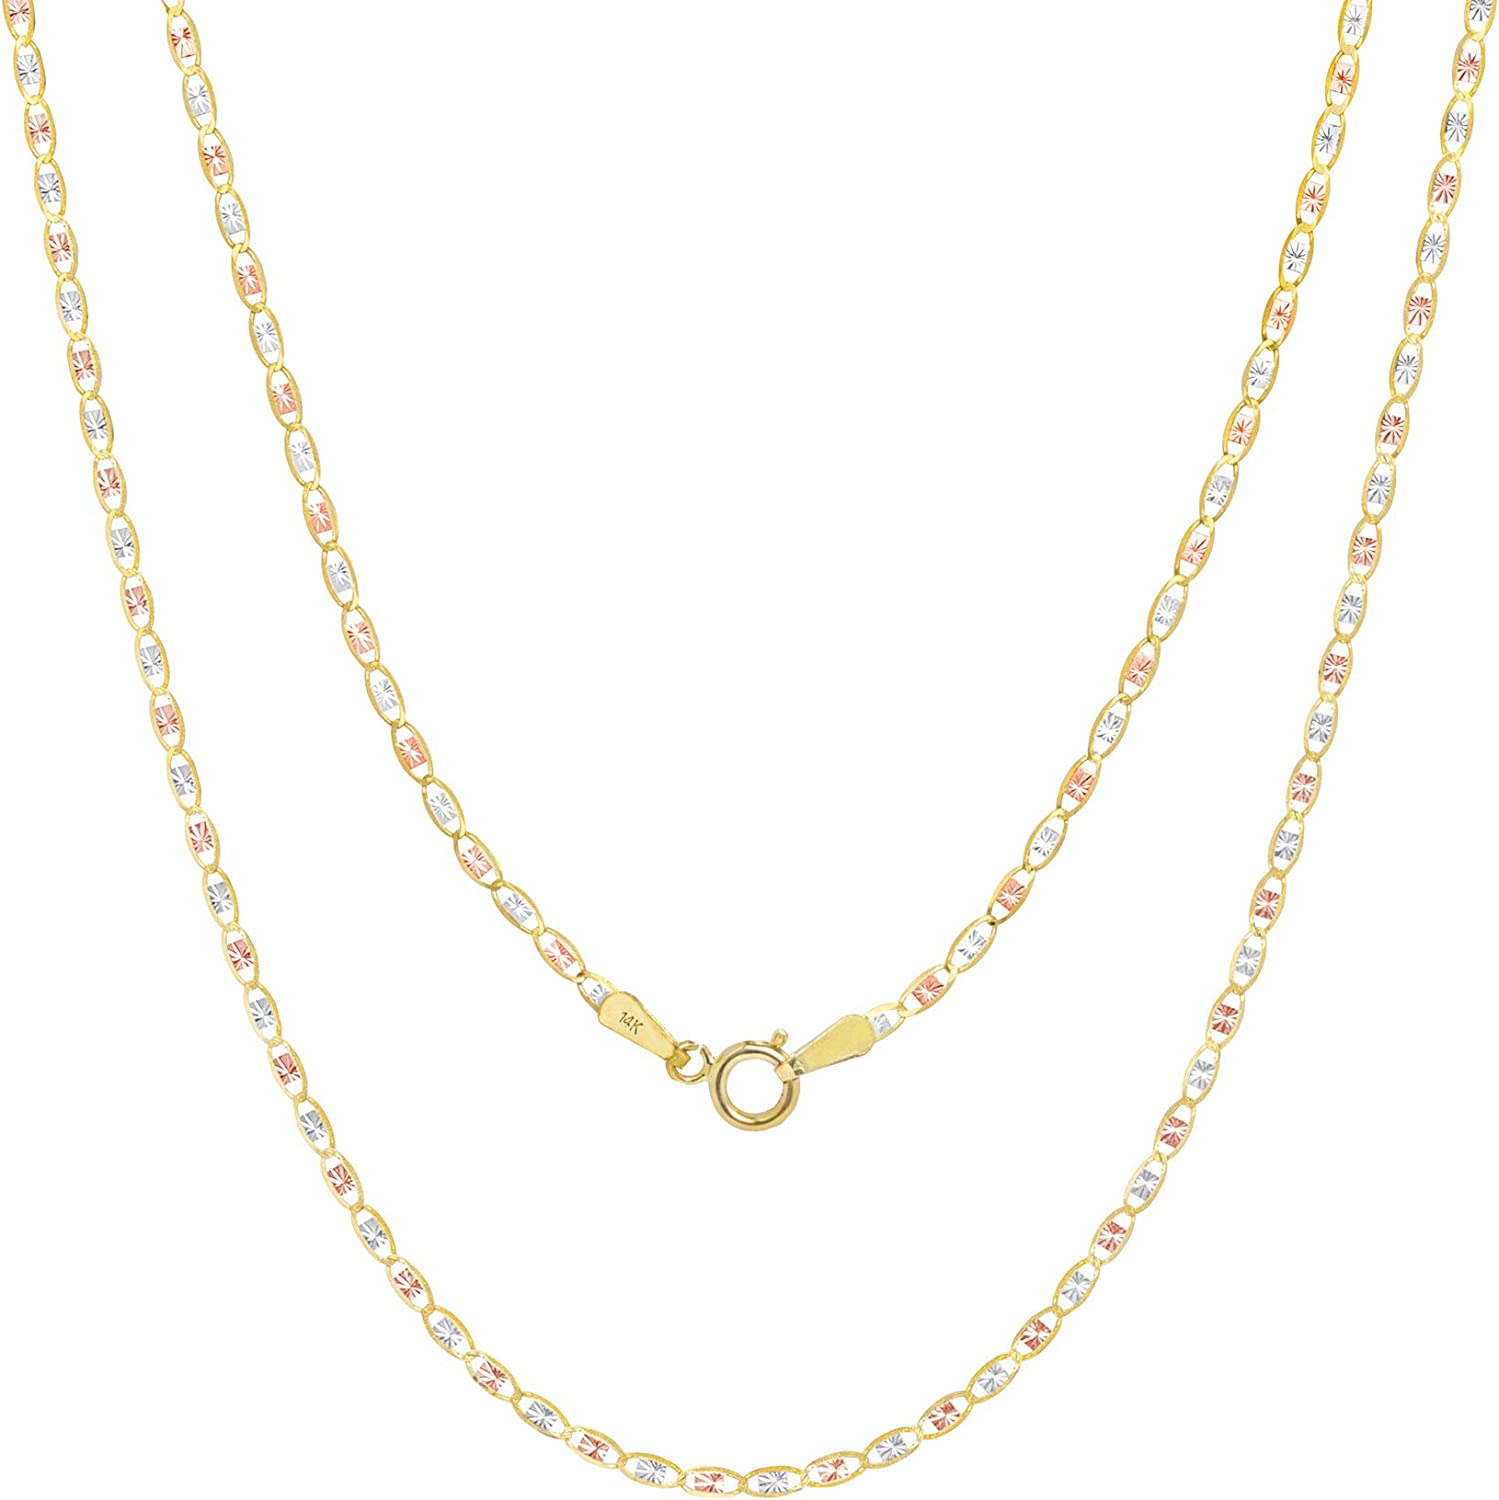 Nuragold 14k Tri Color Yellow White Rose Gold 1.5mm Valentin Mariner Anchor Link Chain Pendant Necklace, Womens 16